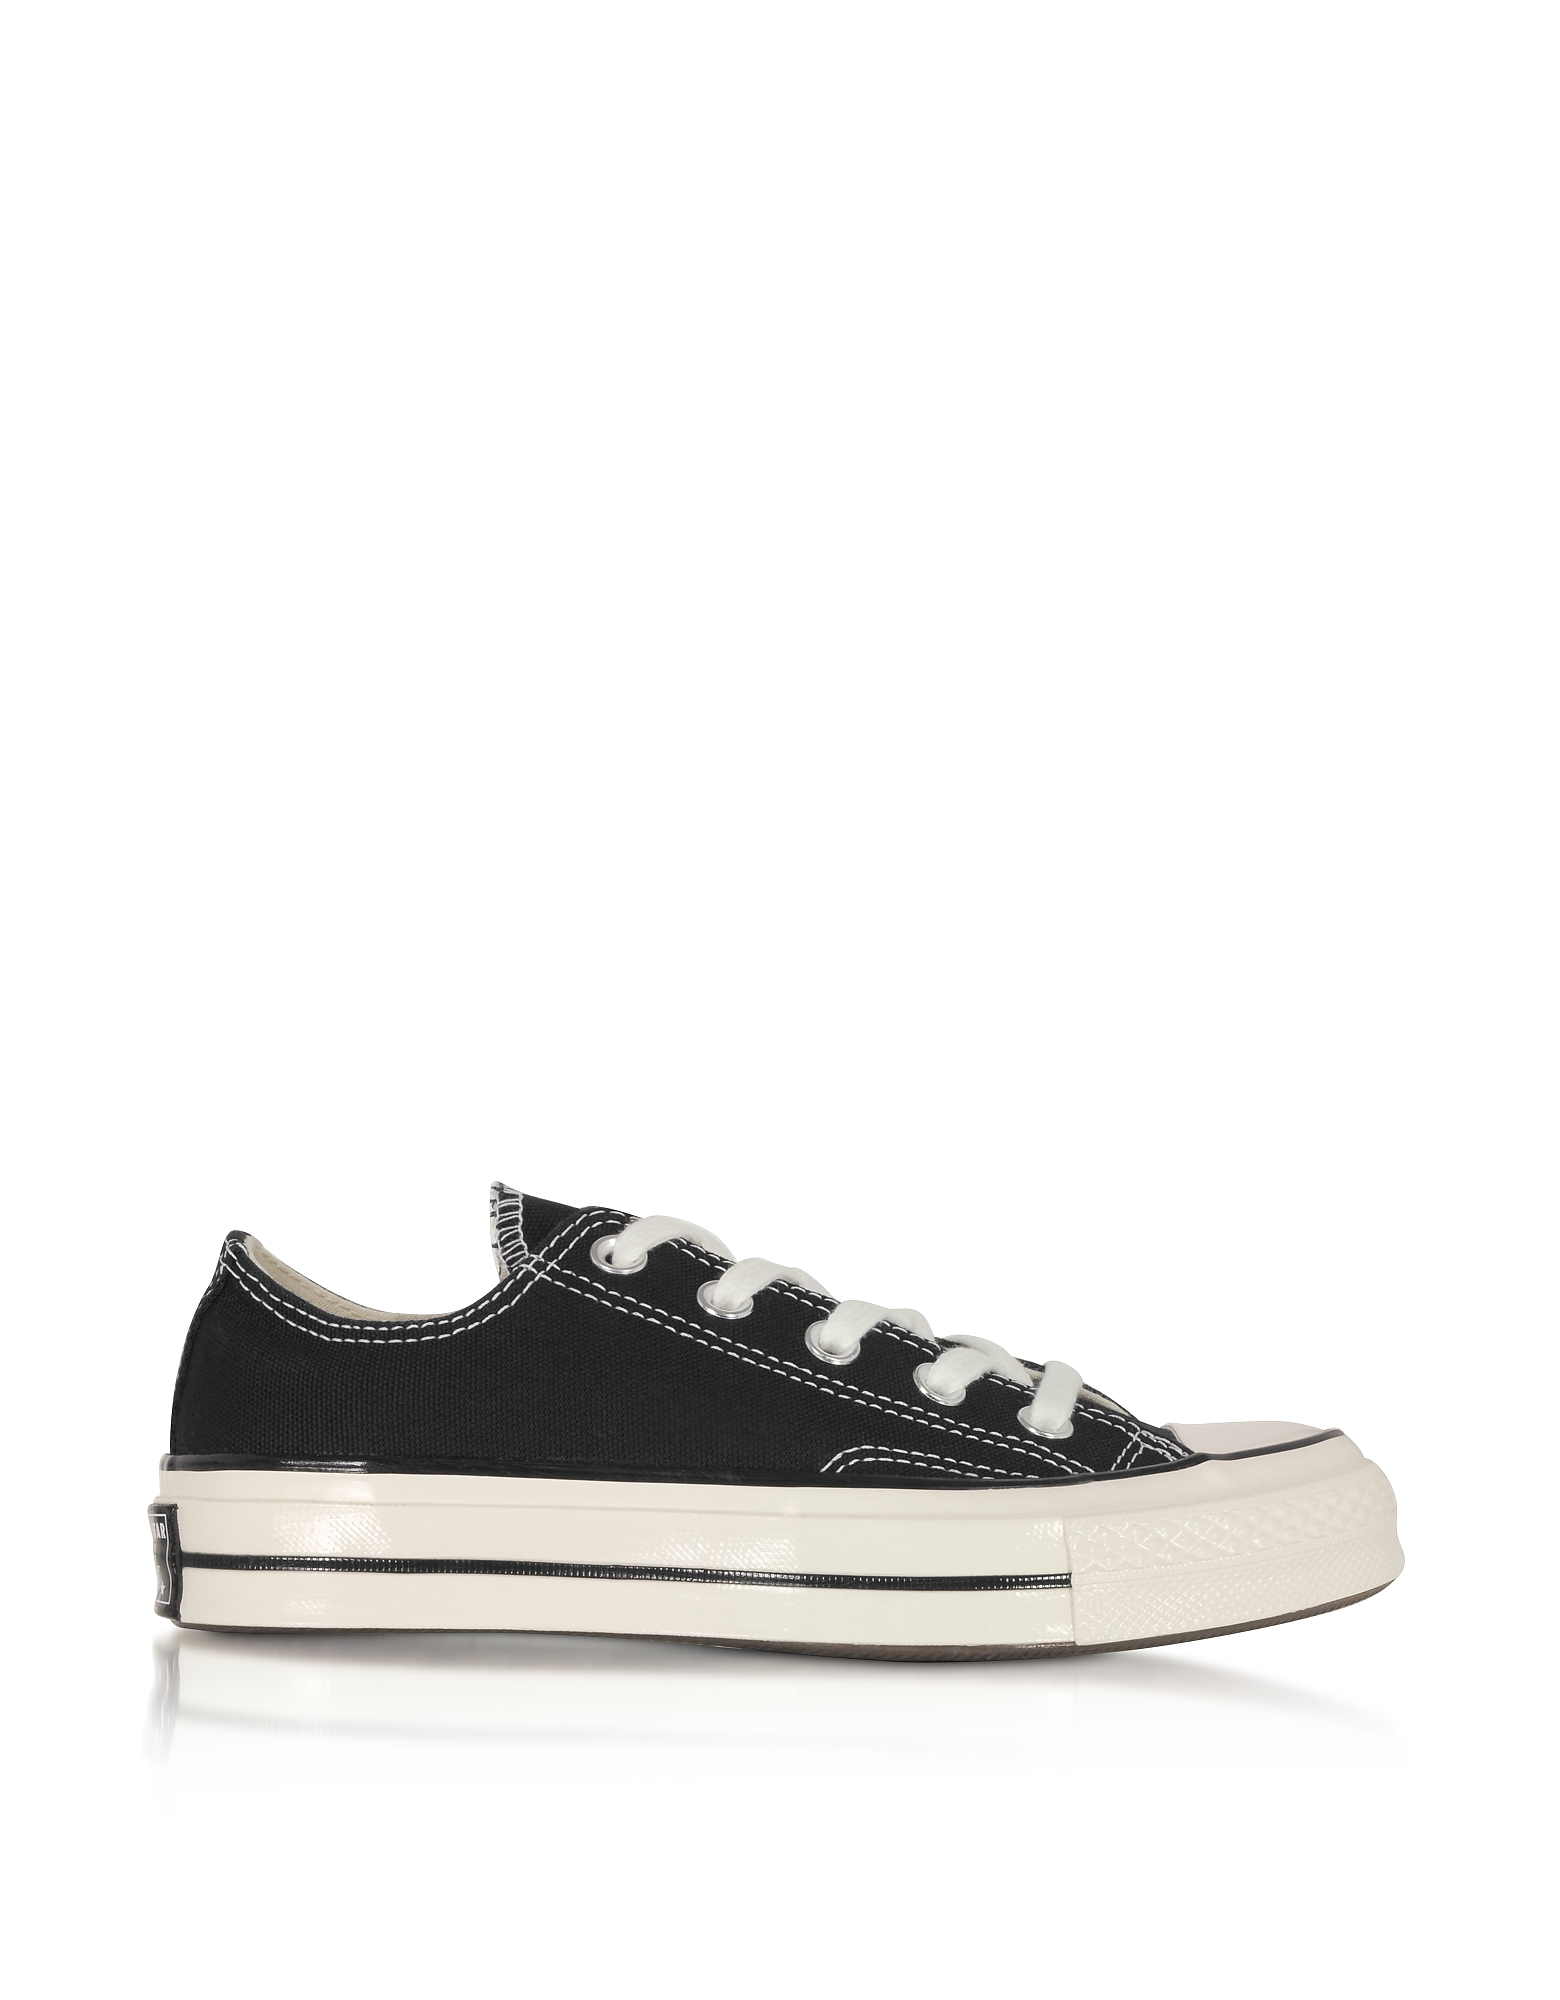 Converse Limited Edition Designer Shoes, Black Chuck 70 w/ Vintage Canvas Low Top